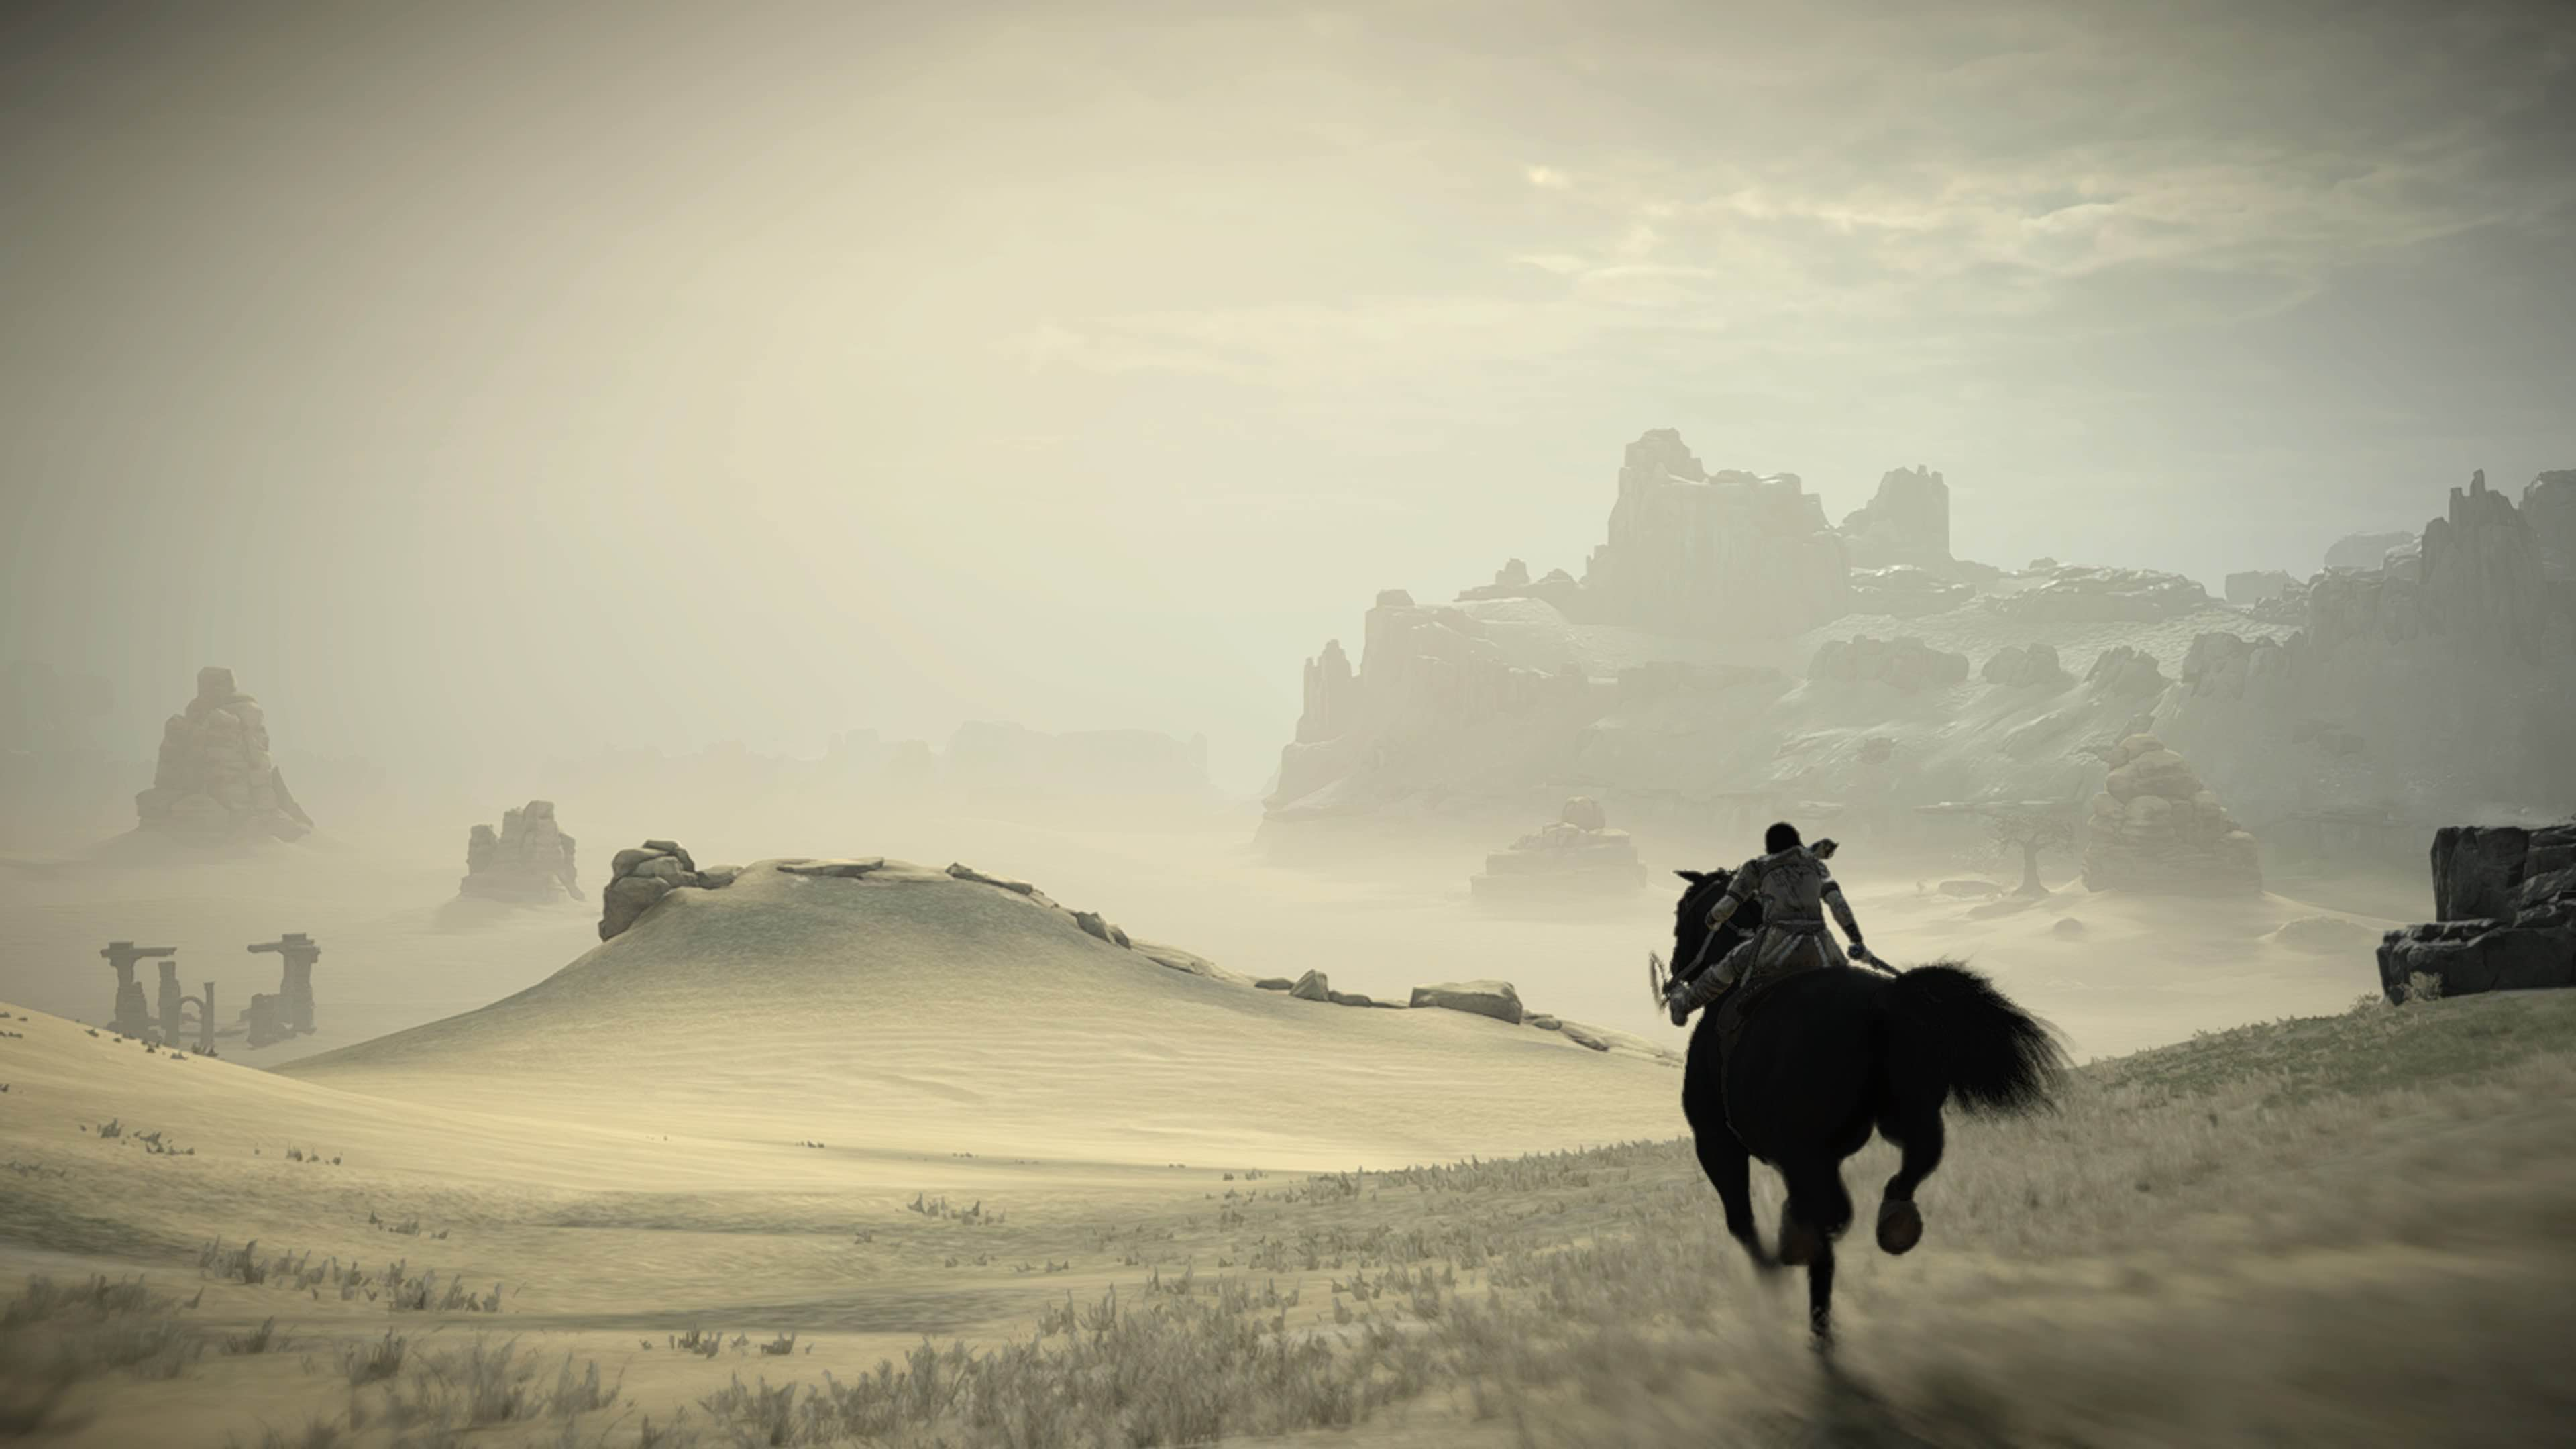 Shadow_of_the_Colossus_Coloso_13_1